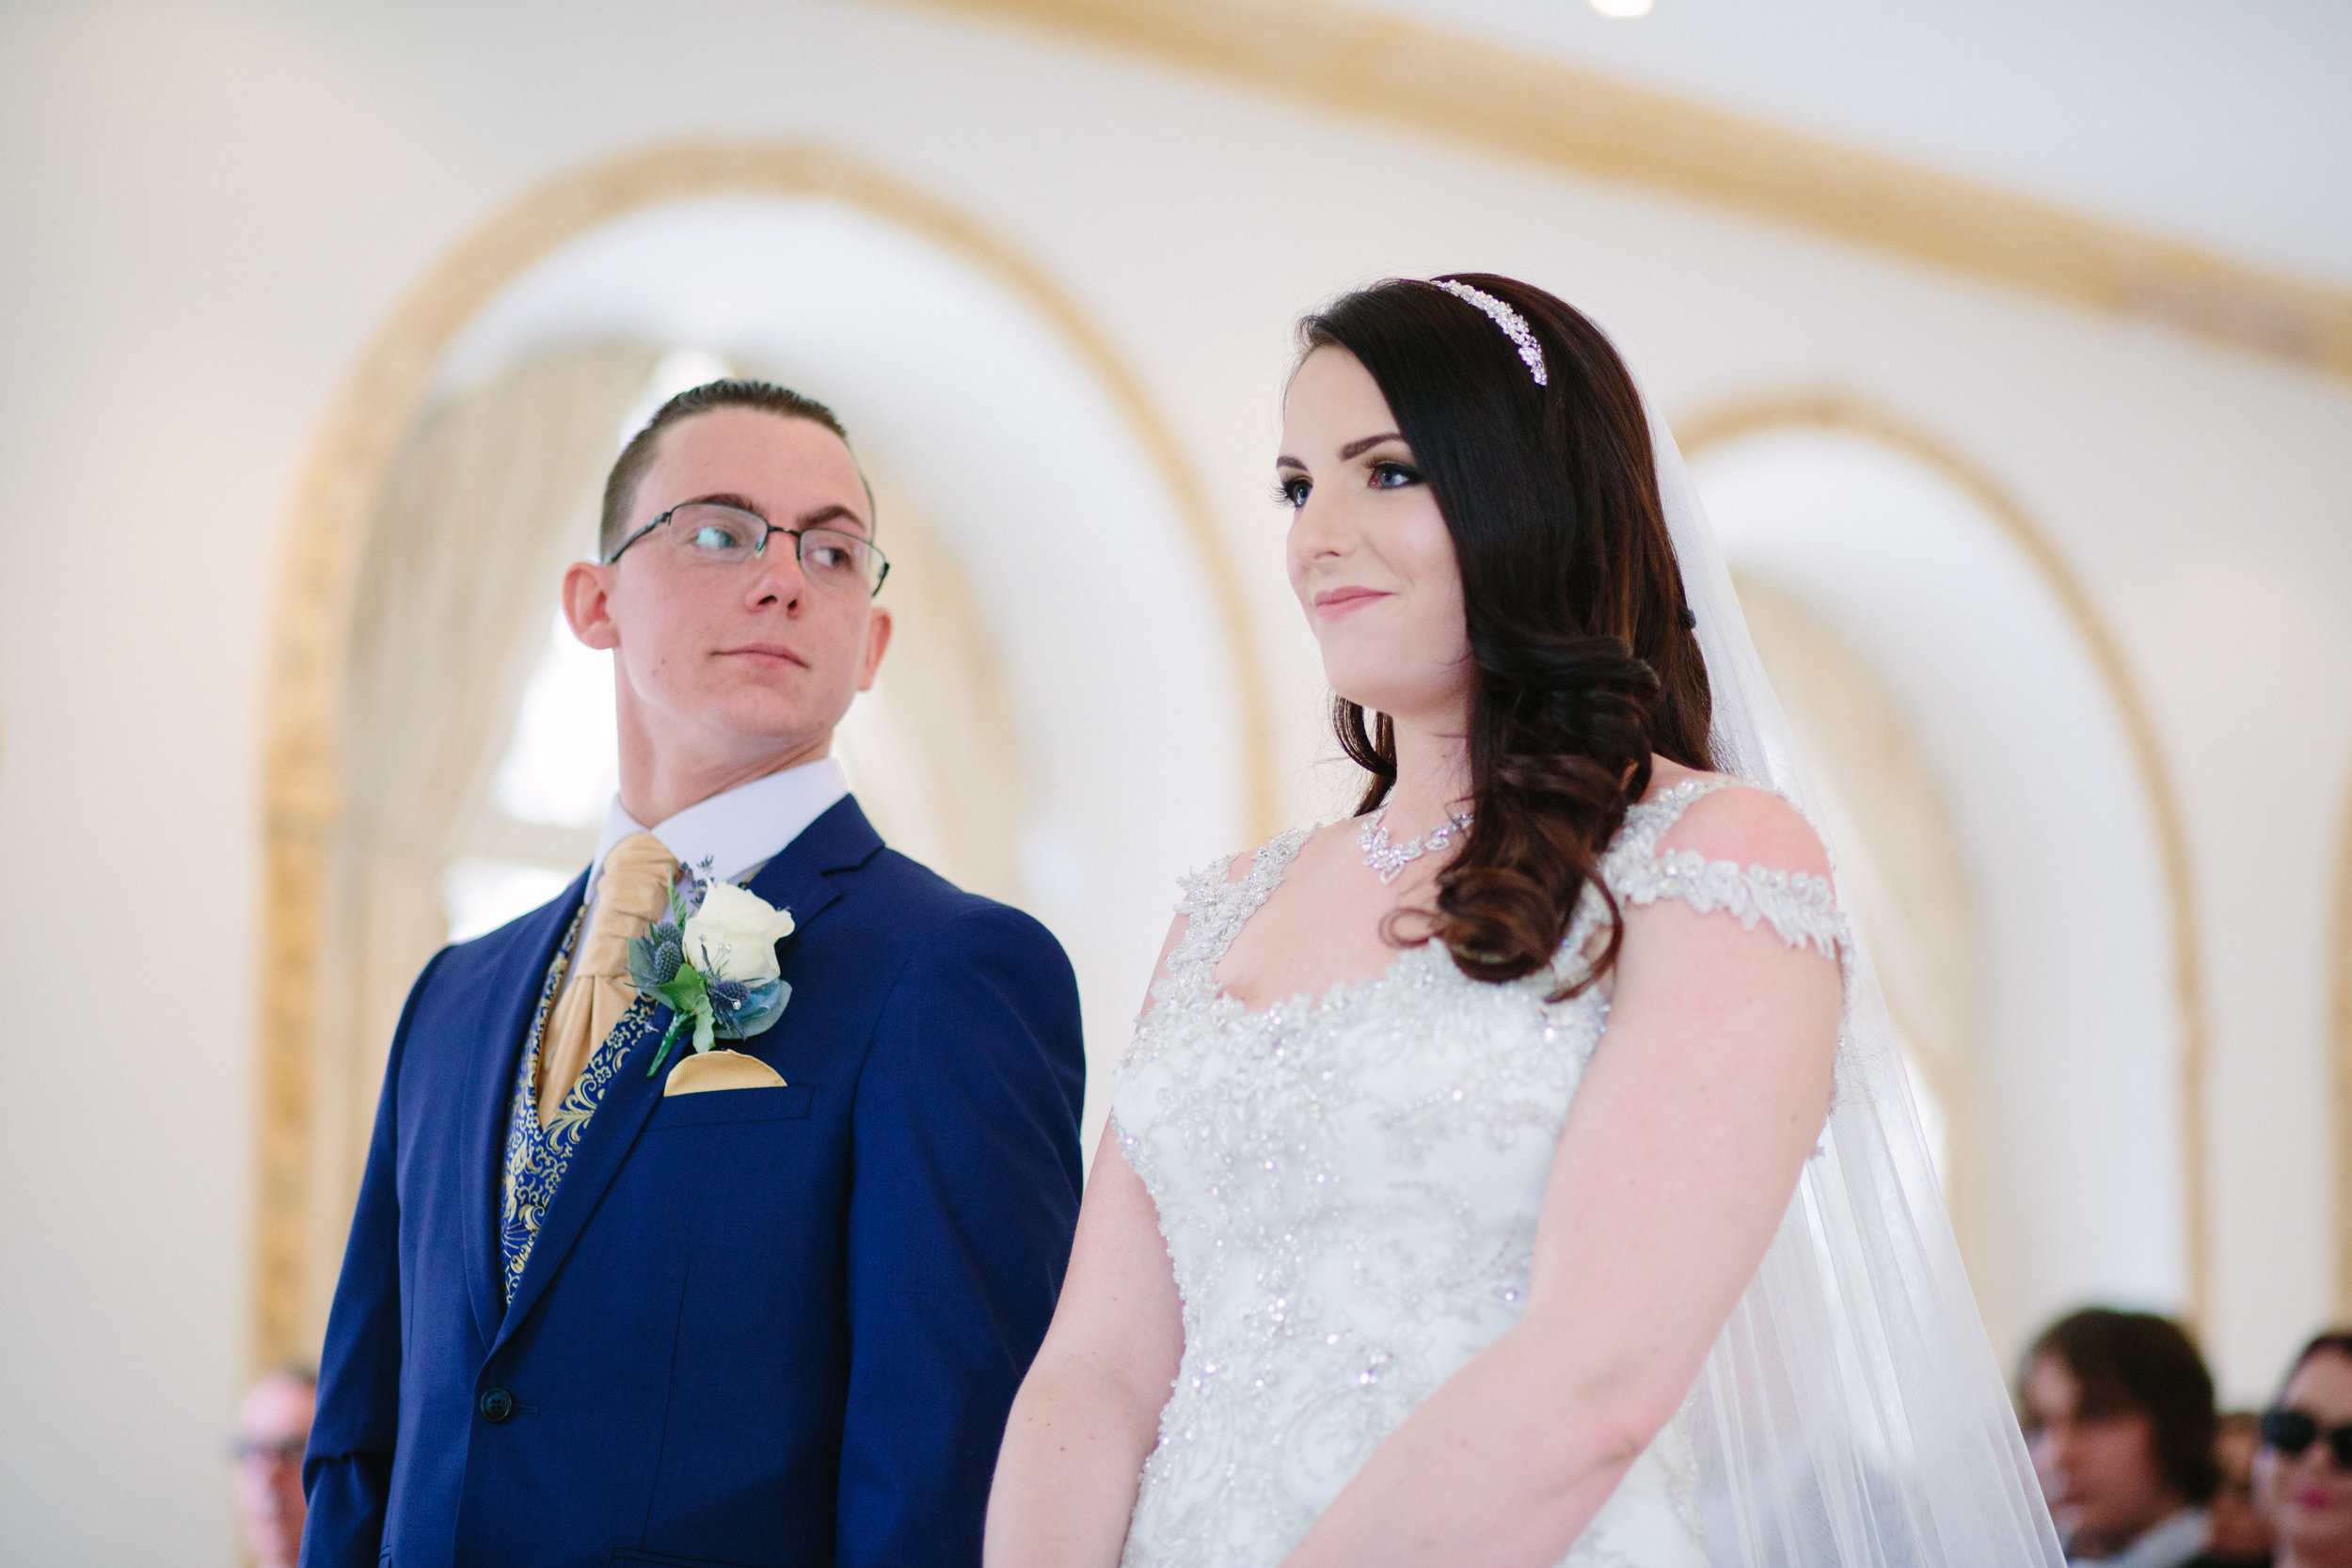 northbrook-park-farnham-hampshire-winter-spring-wedding-photography-21